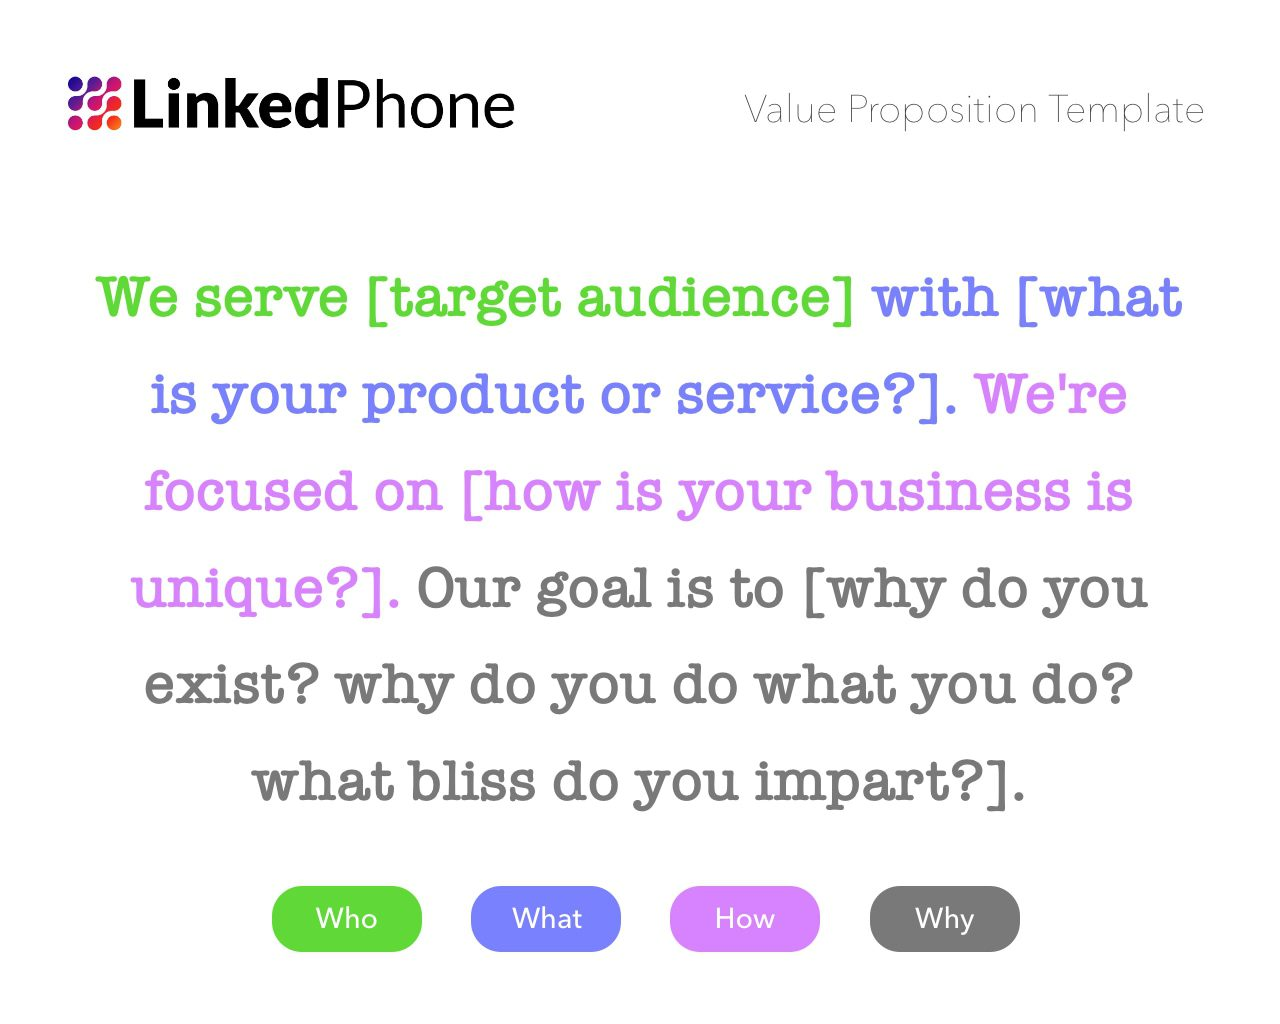 Value Proposition Template Example